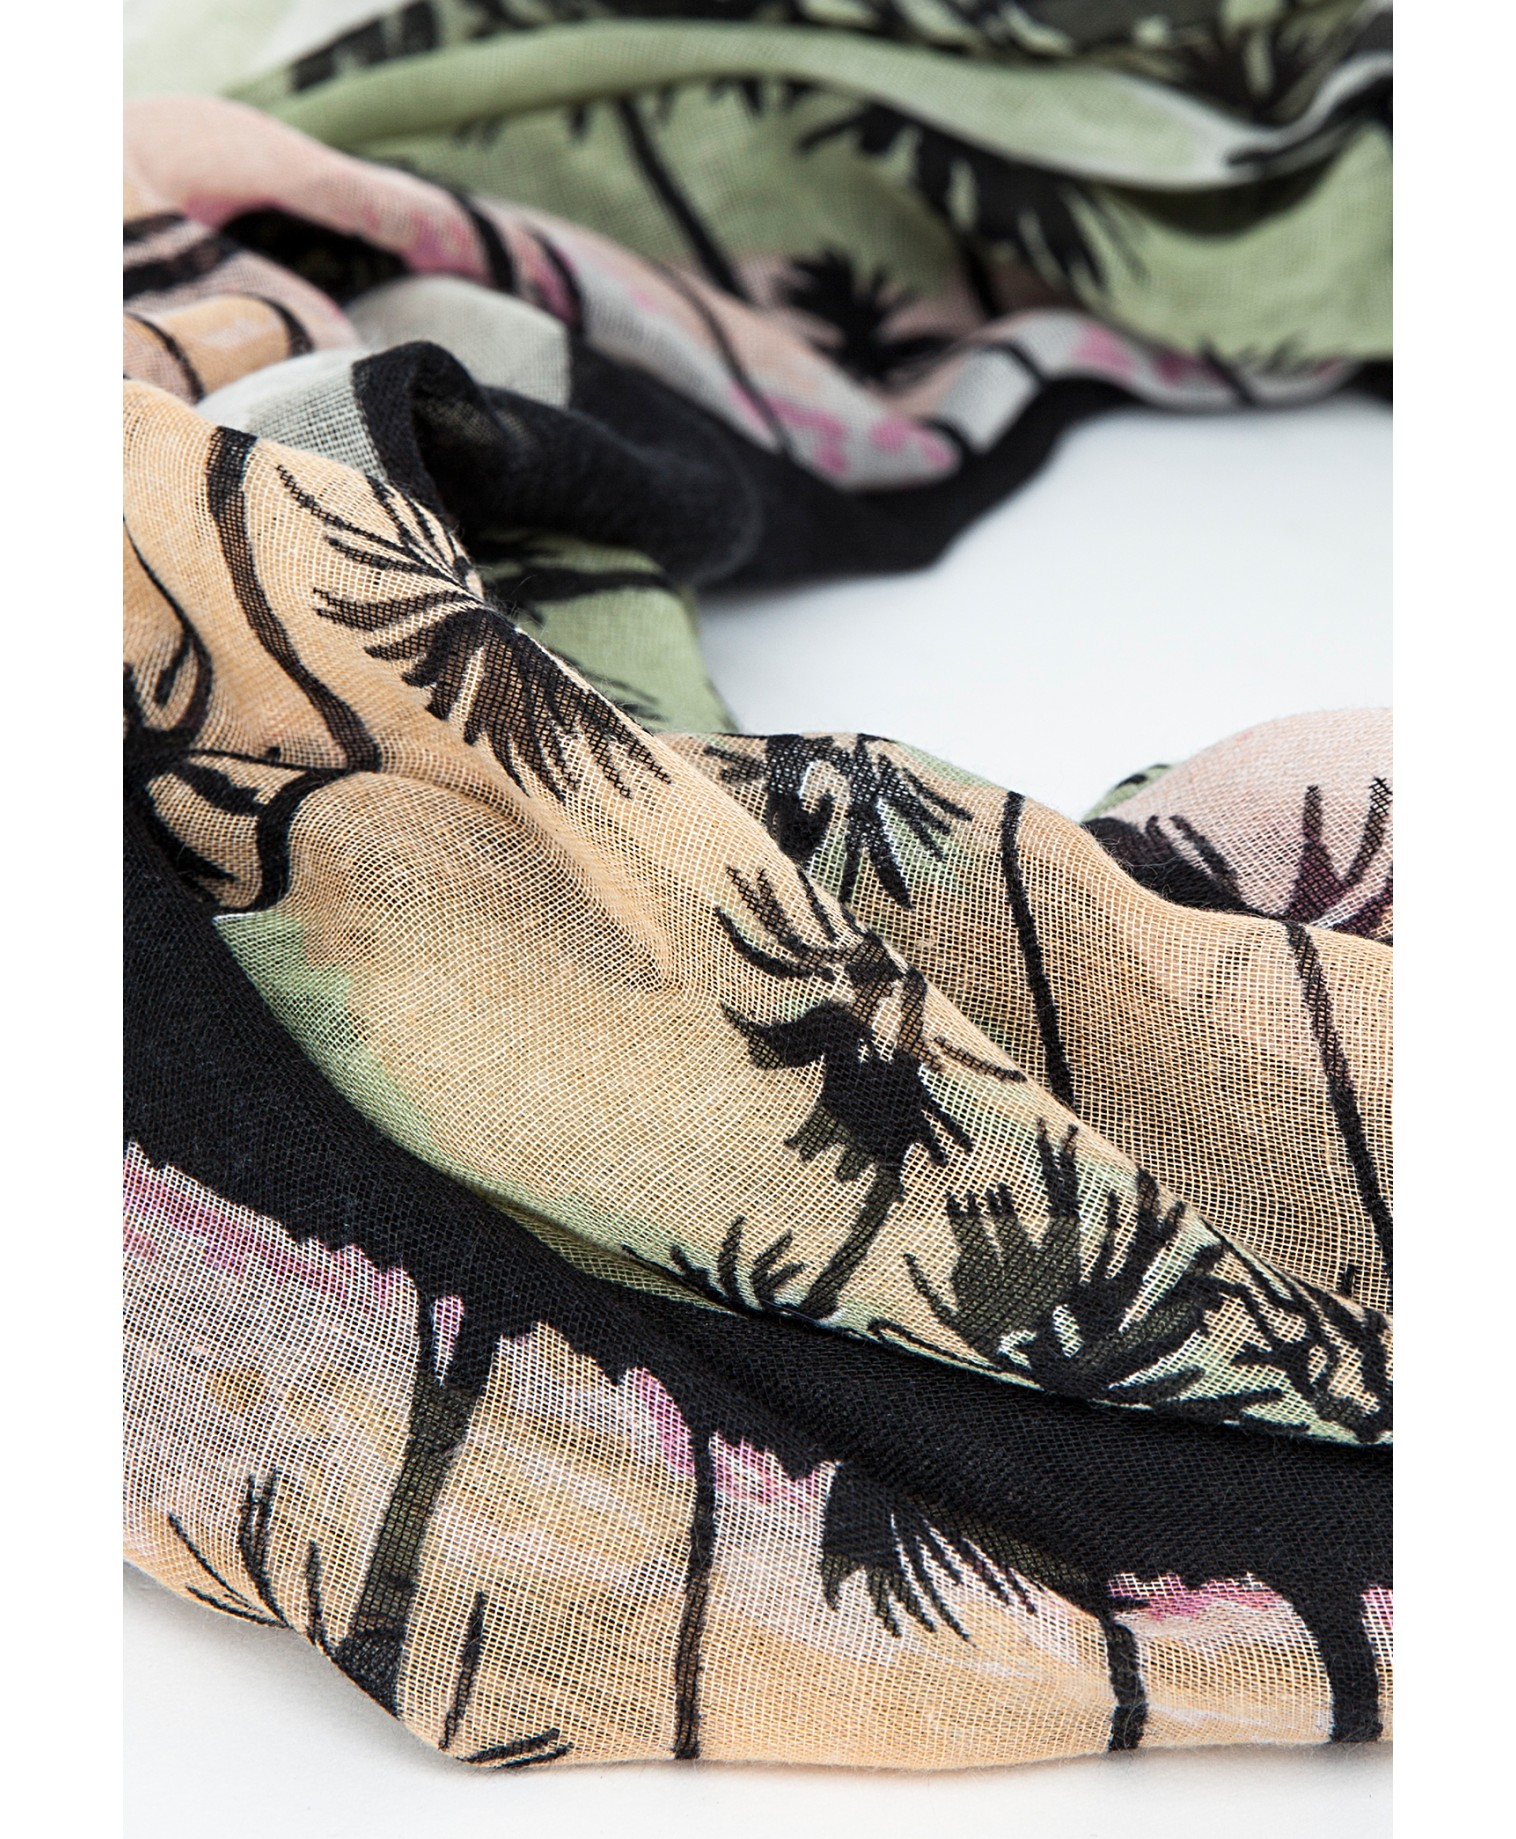 Ulca scarf in palm tree print 3